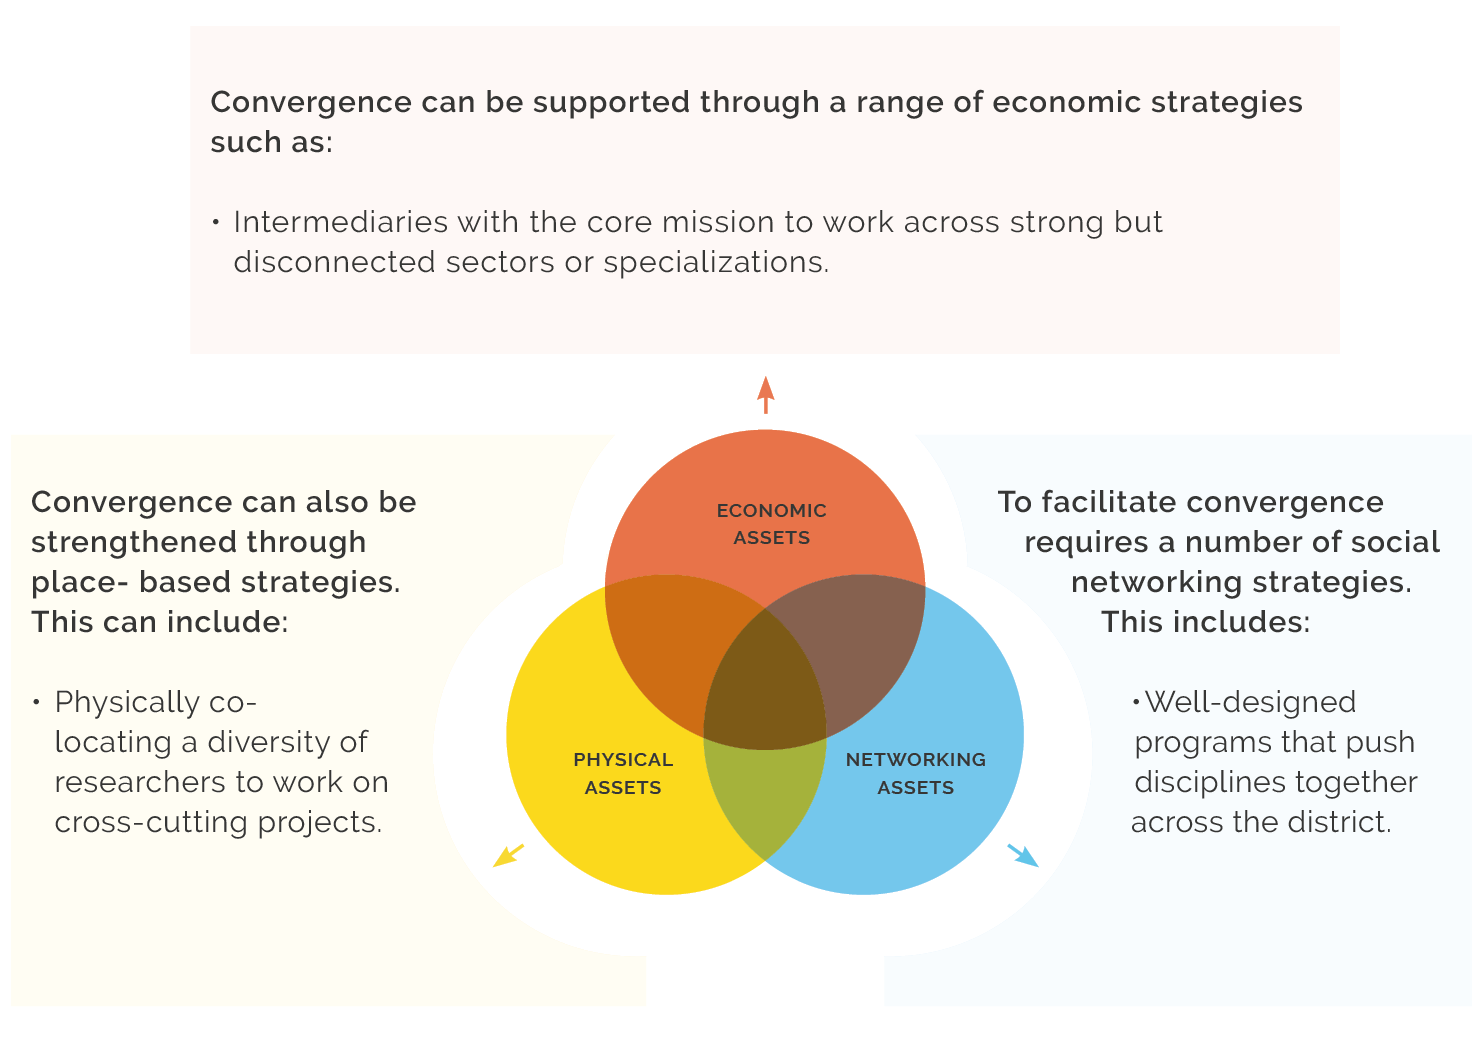 Facilitating convergence: how assets transform into strategies